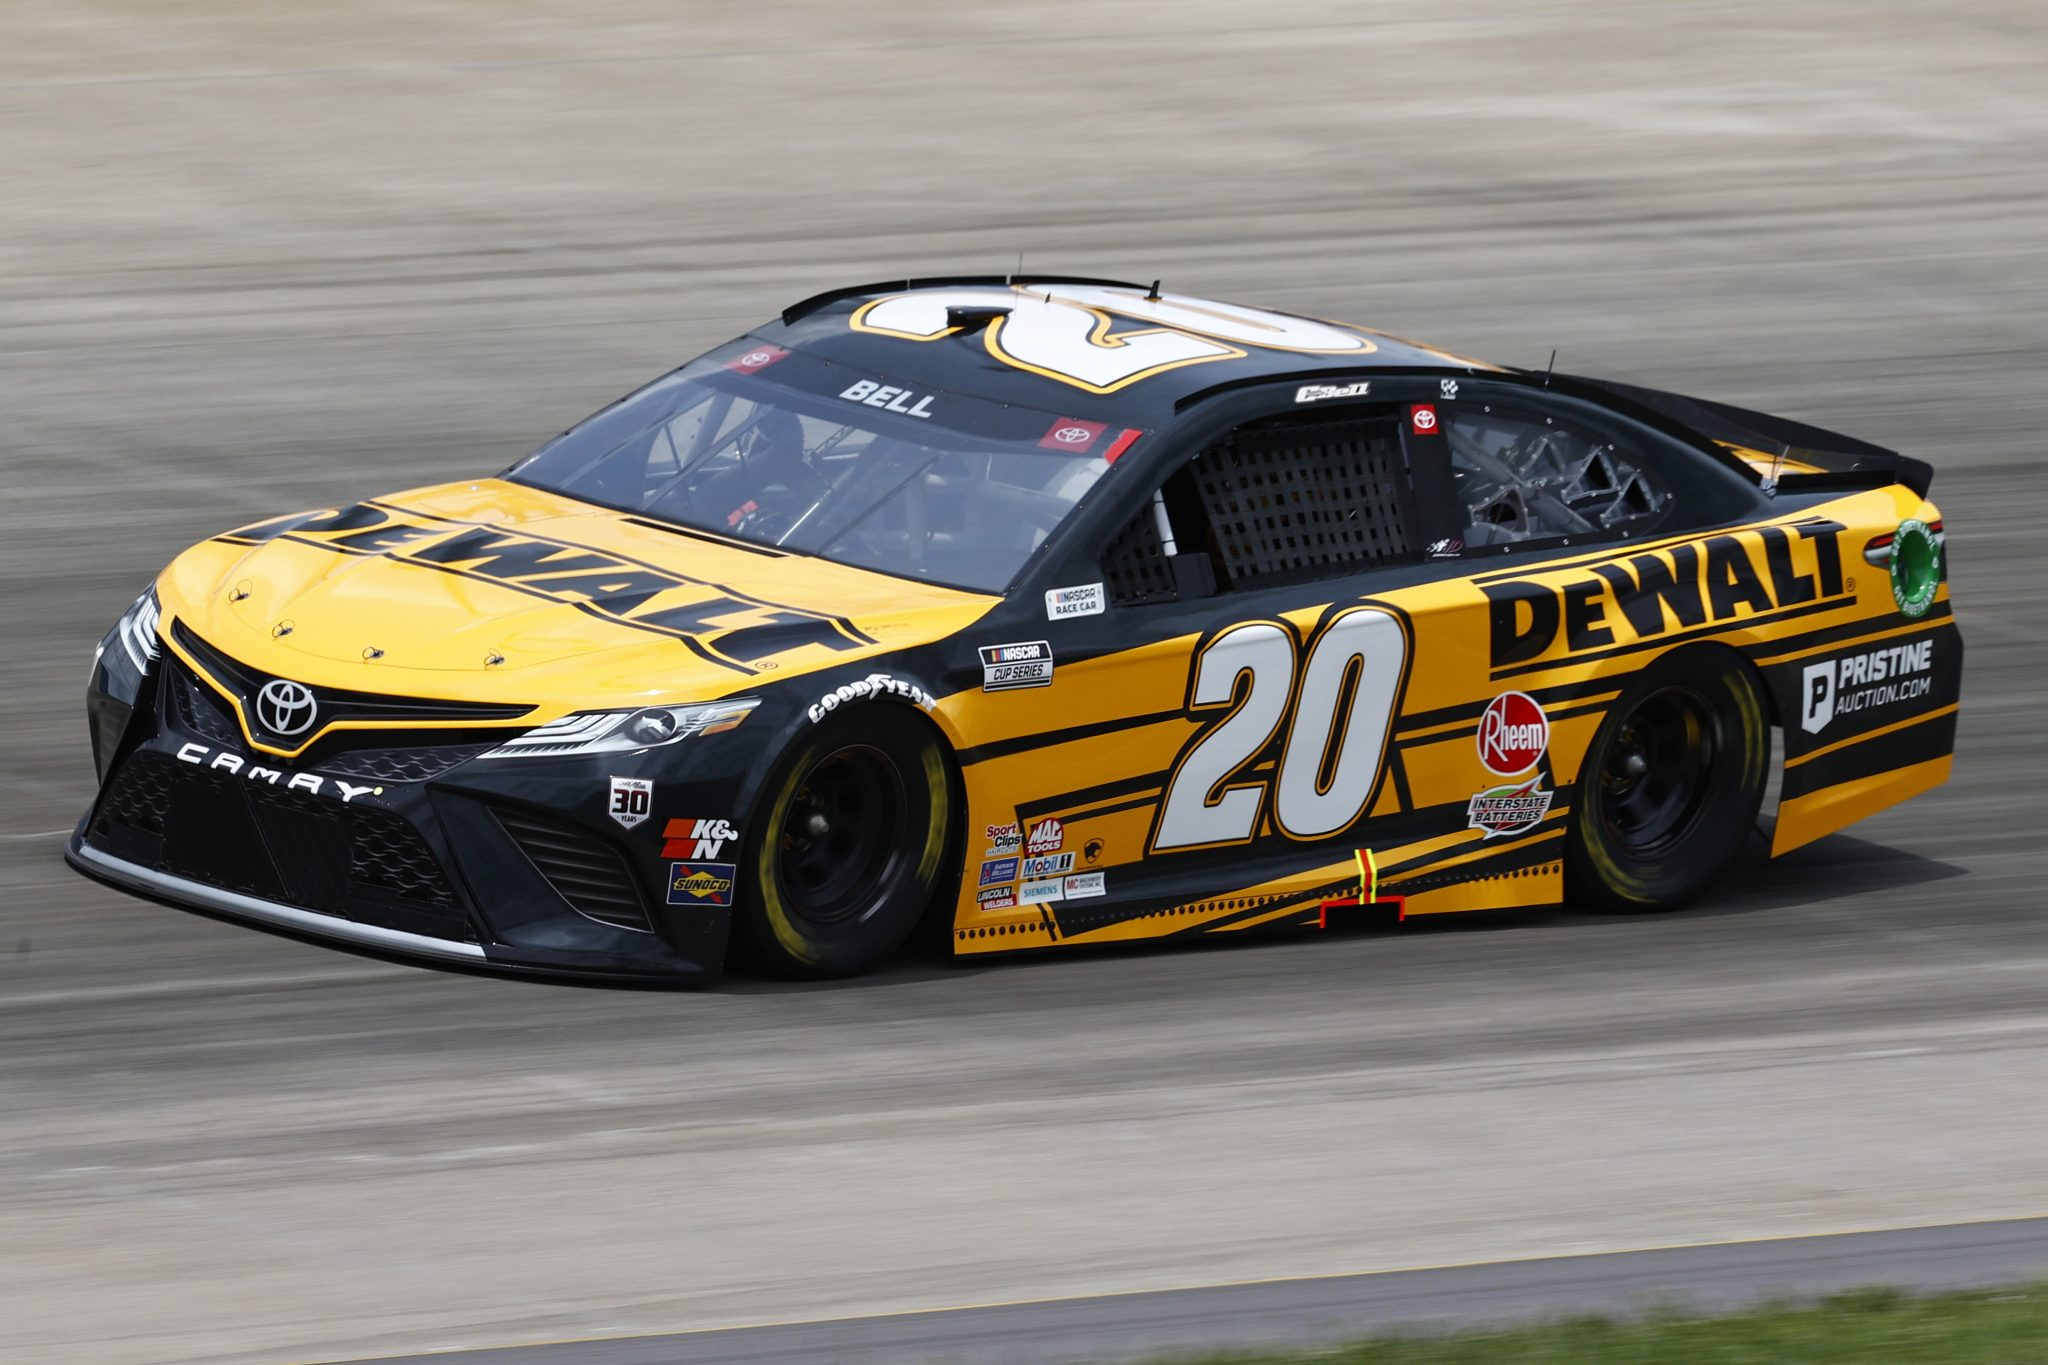 LEBANON, TENNESSEE - JUNE 19: Christopher Bell, driver of the #20 DEWALT Toyota, drives during practice for the NASCAR Cup Series Ally 400 at Nashville Superspeedway on June 19, 2021 in Lebanon, Tennessee. (Photo by Jared C. Tilton/Getty Images) | Getty Images